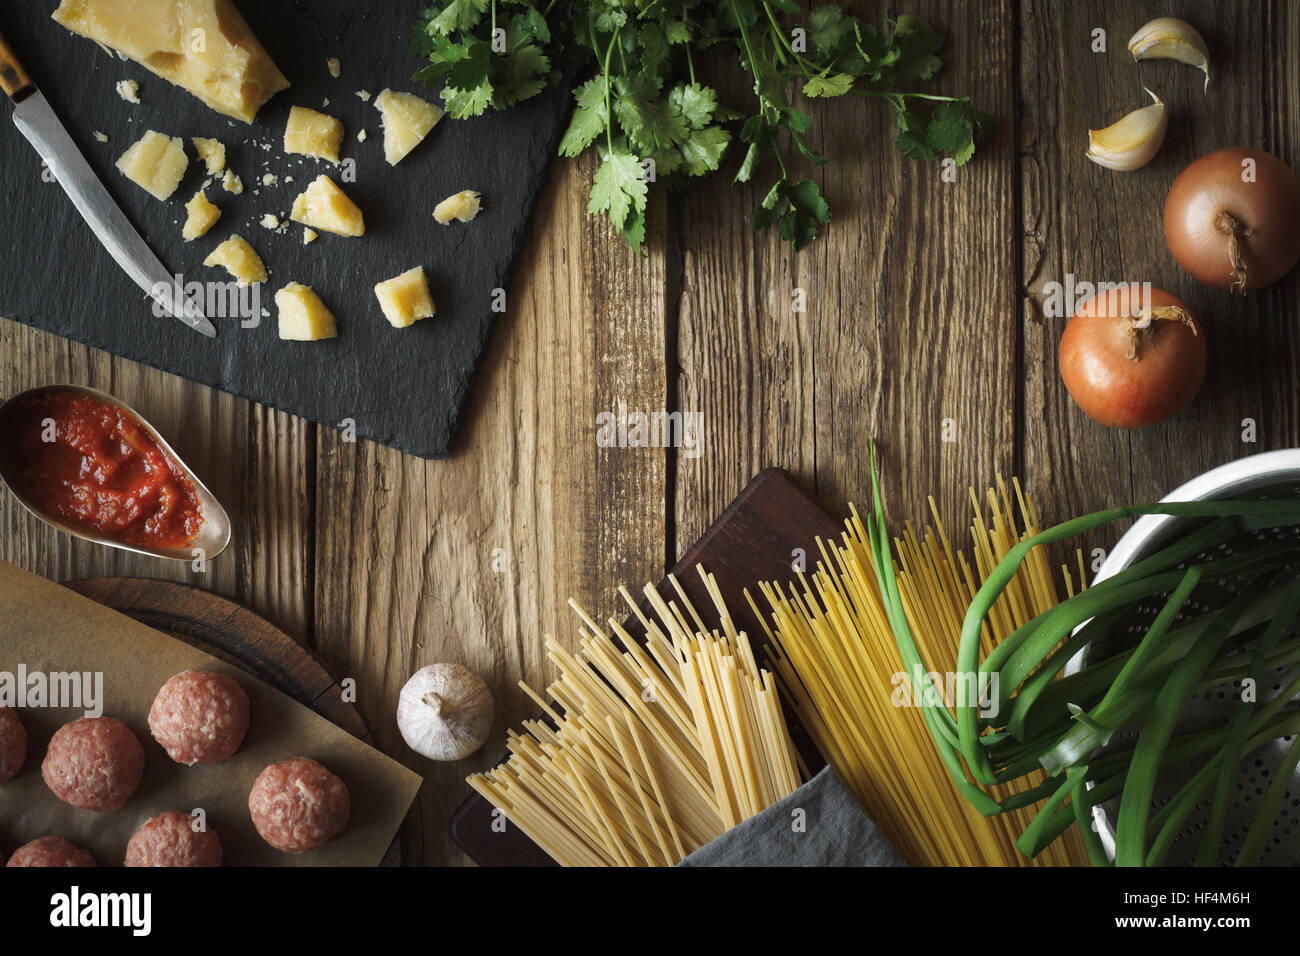 Ingredients for cooking spaghetti, meatballs with cheese and fresh herbs horizontal copy space Stock Photo